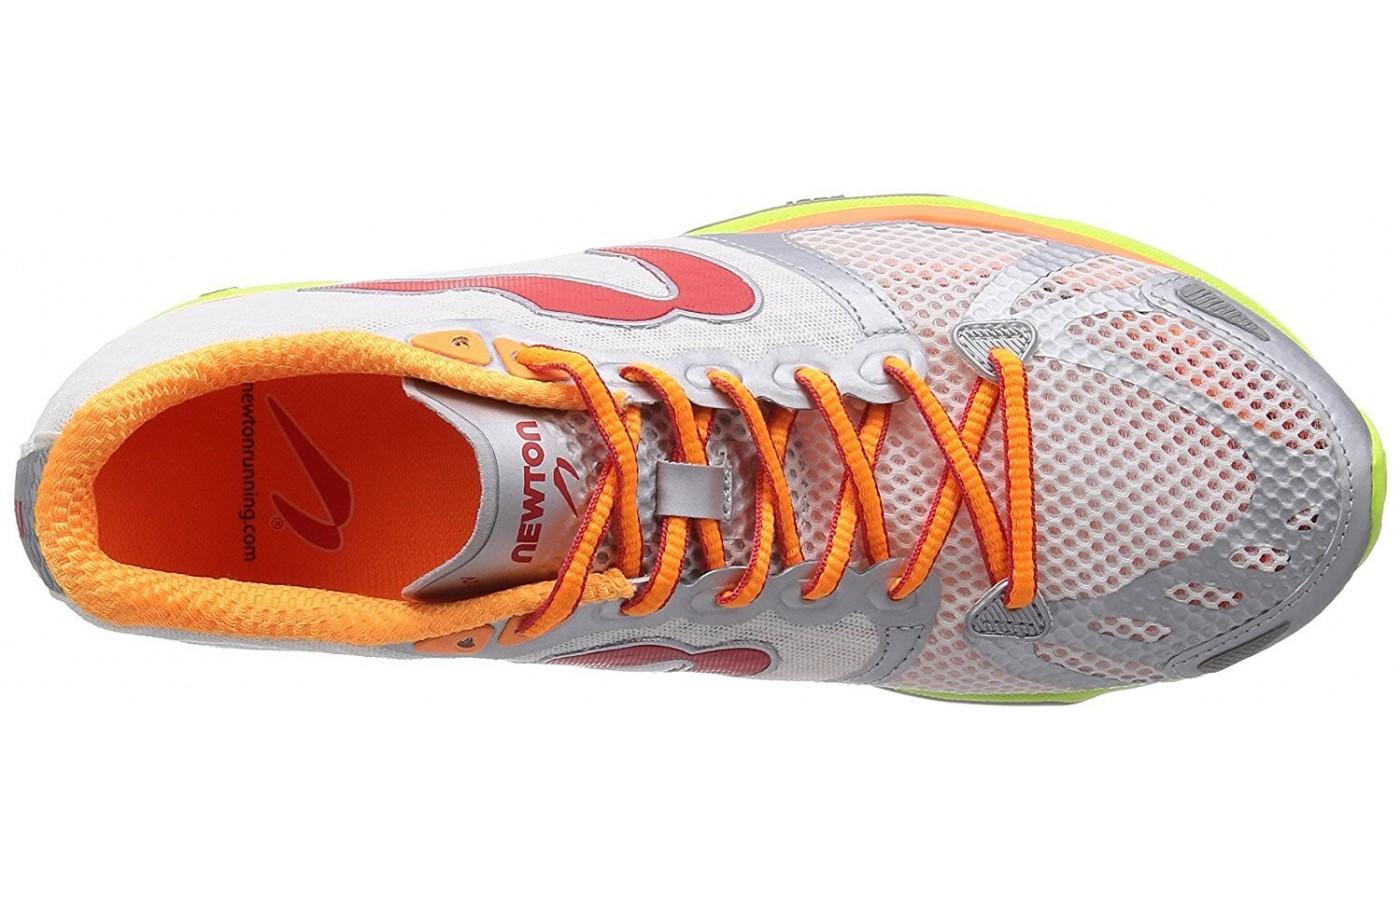 Newton Distance S IV features bright orange laces